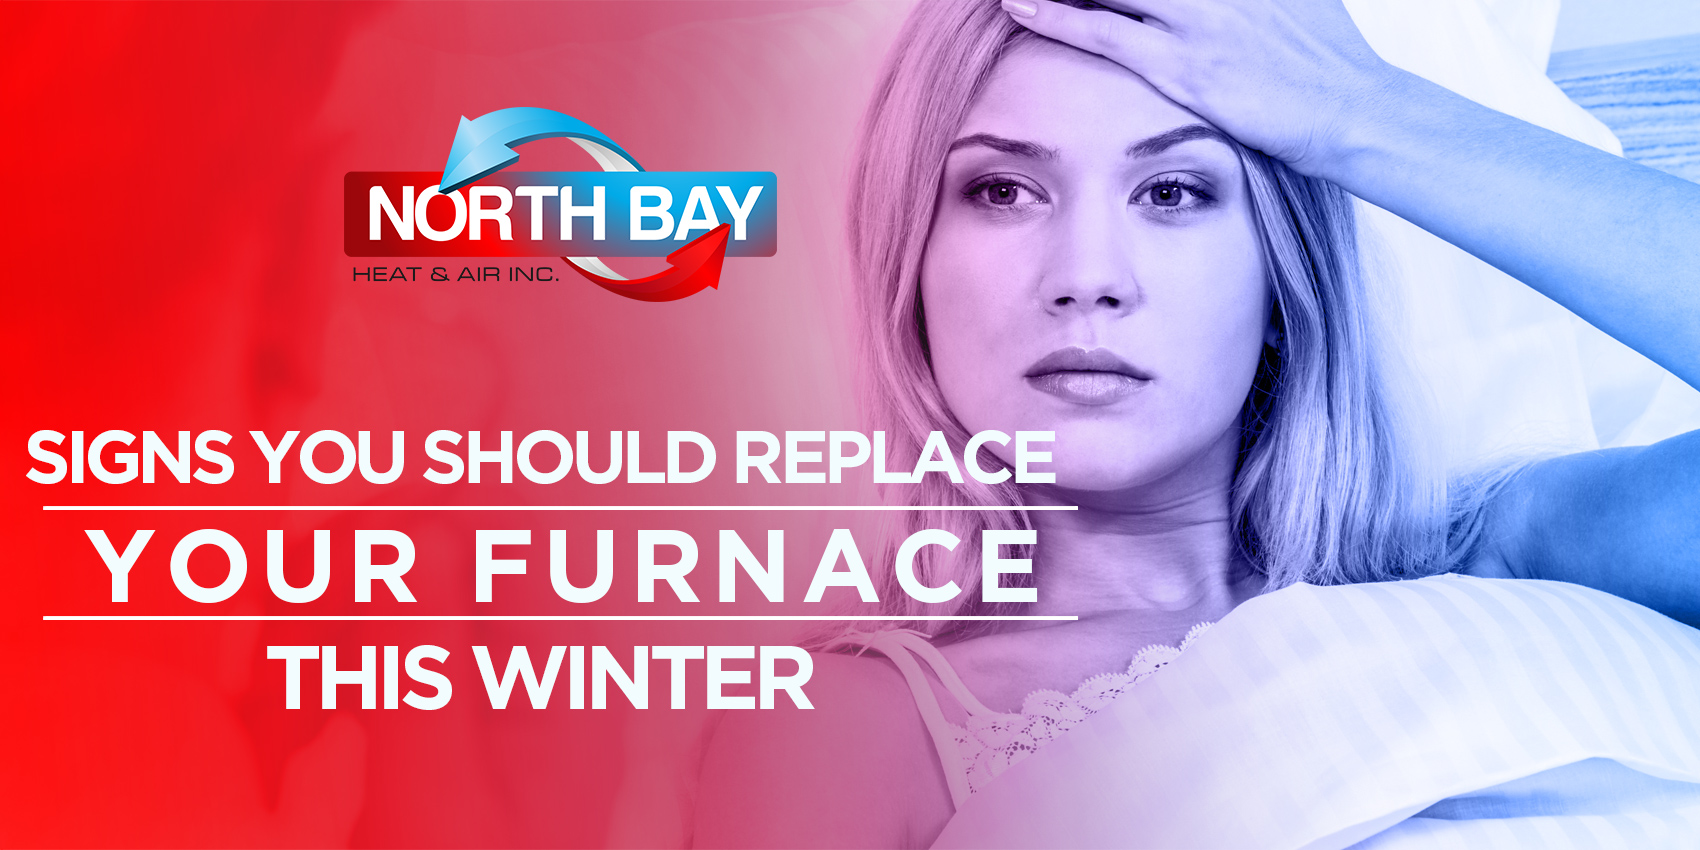 Signs You Should Replace Your Furnace This Winter